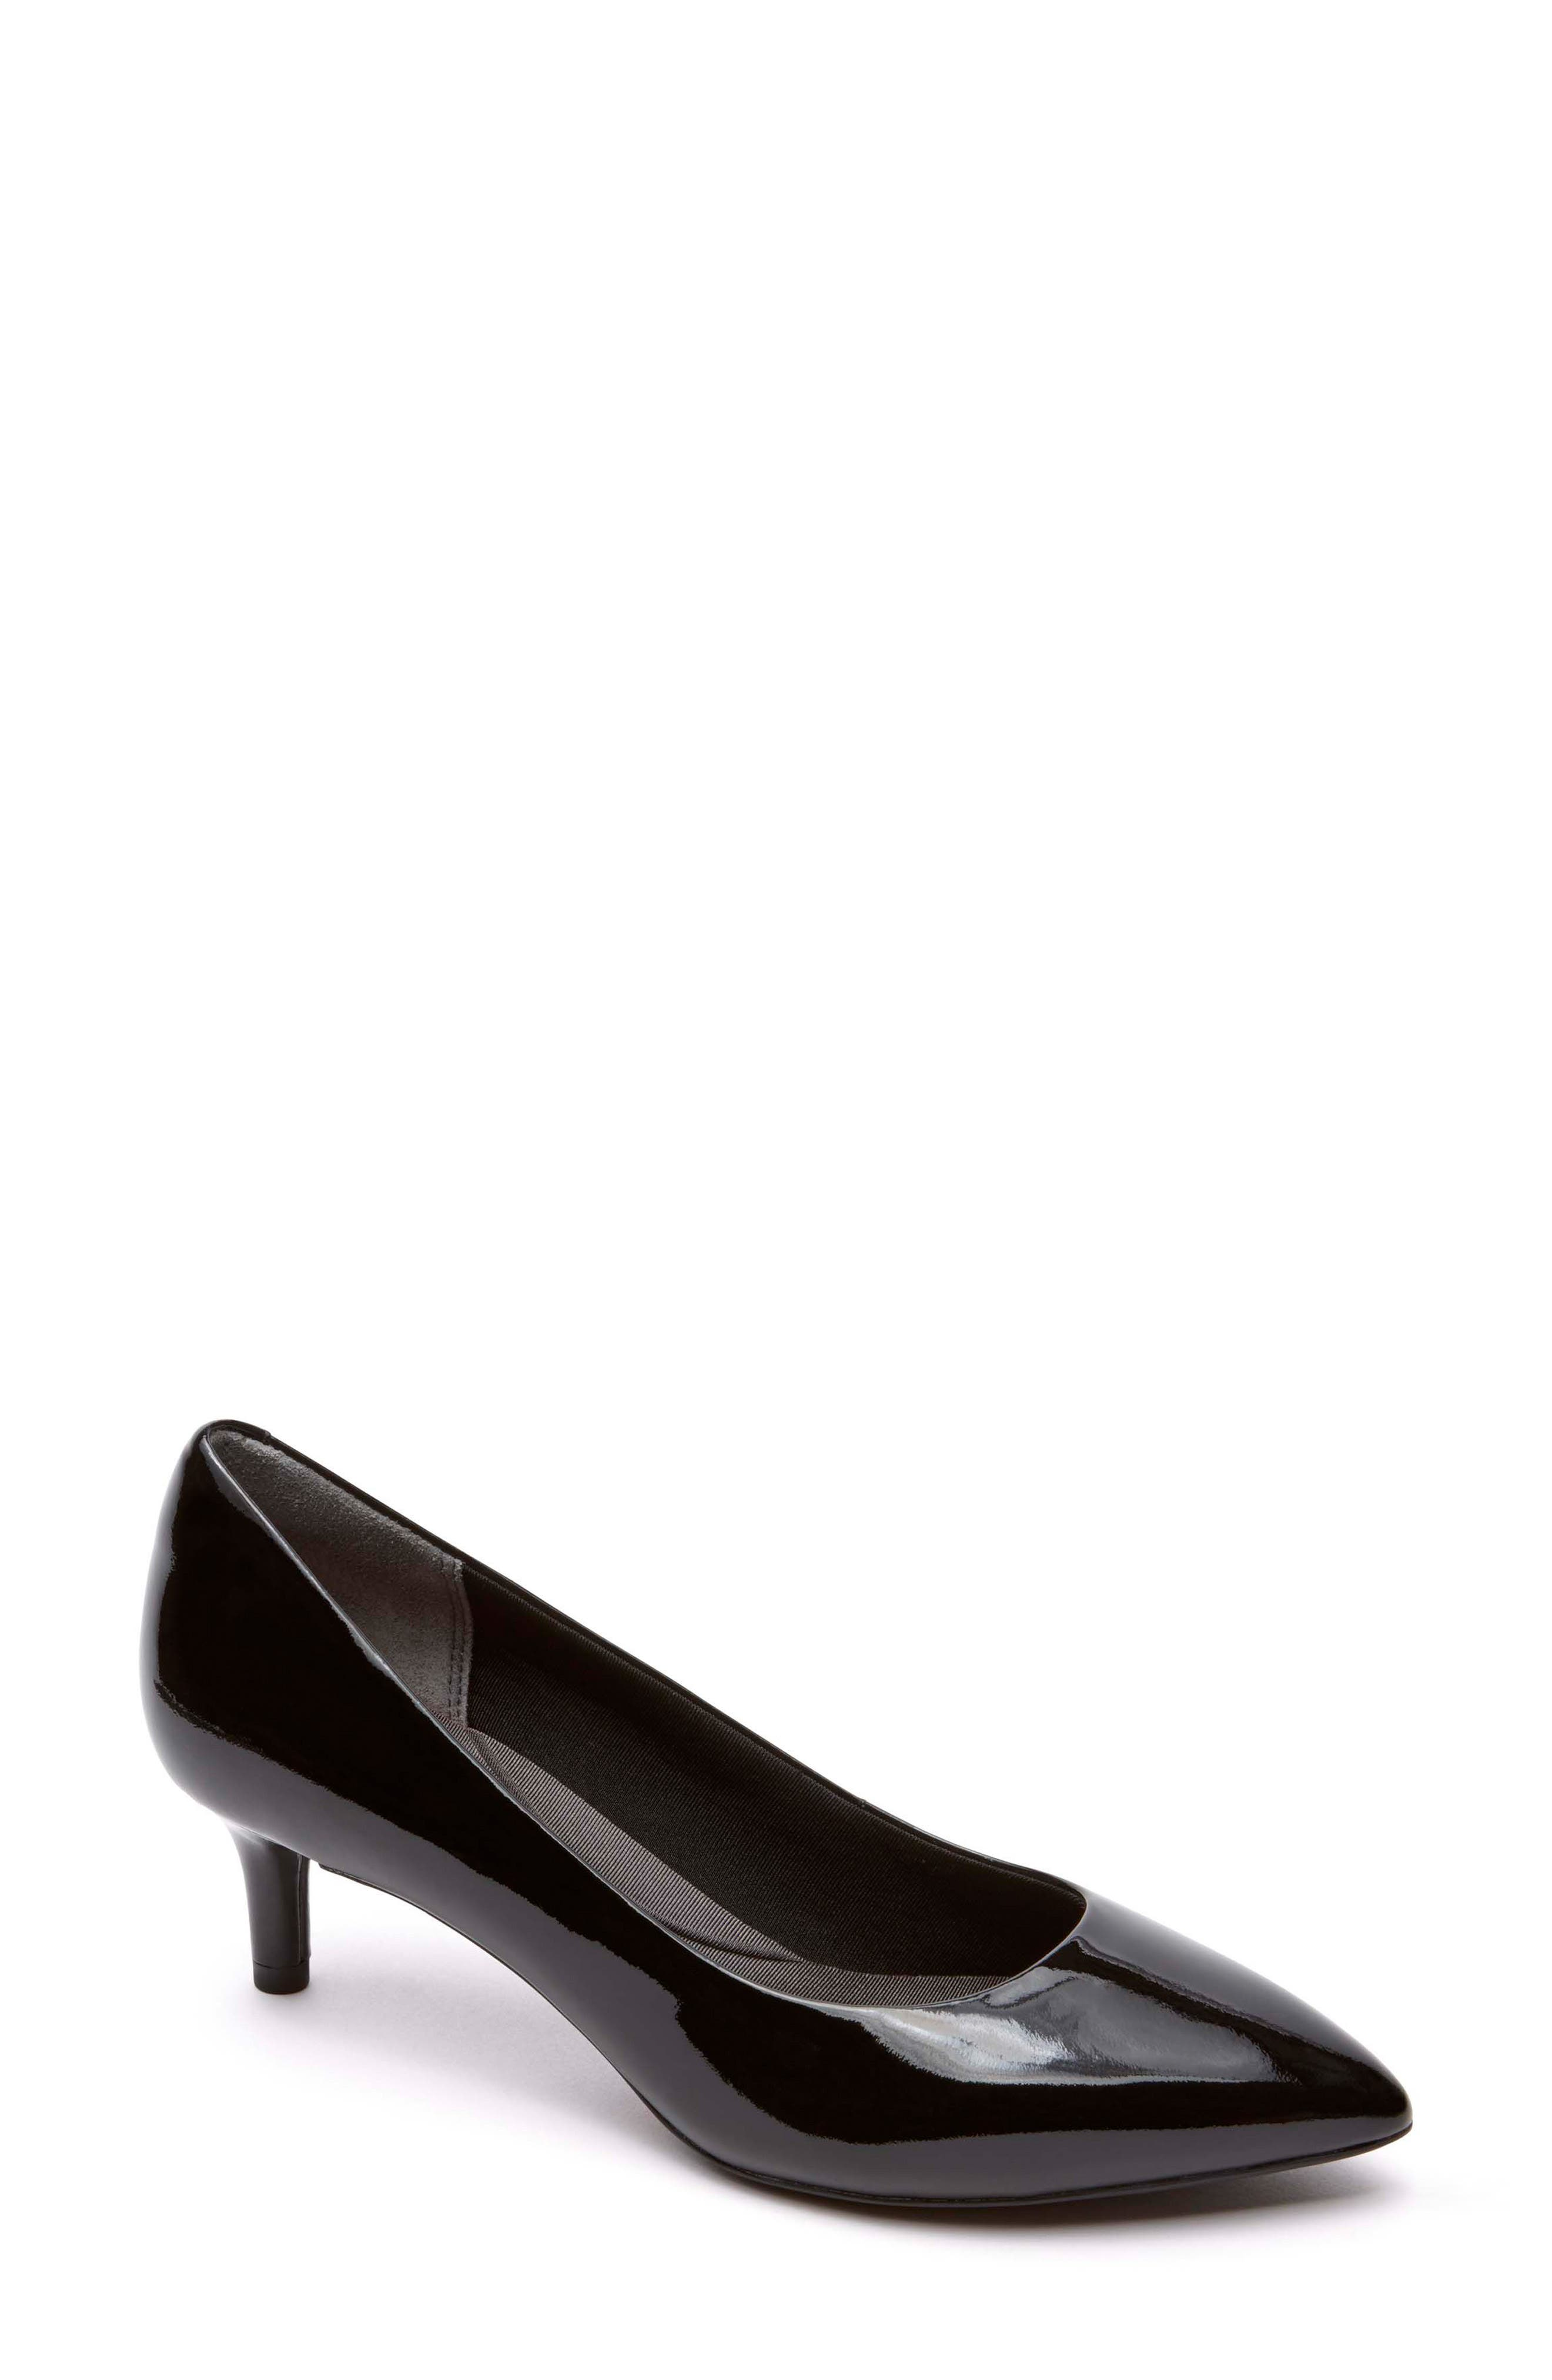 Kalila Luxe Pump,                             Main thumbnail 1, color,                             BLACK PATENT LEATHER